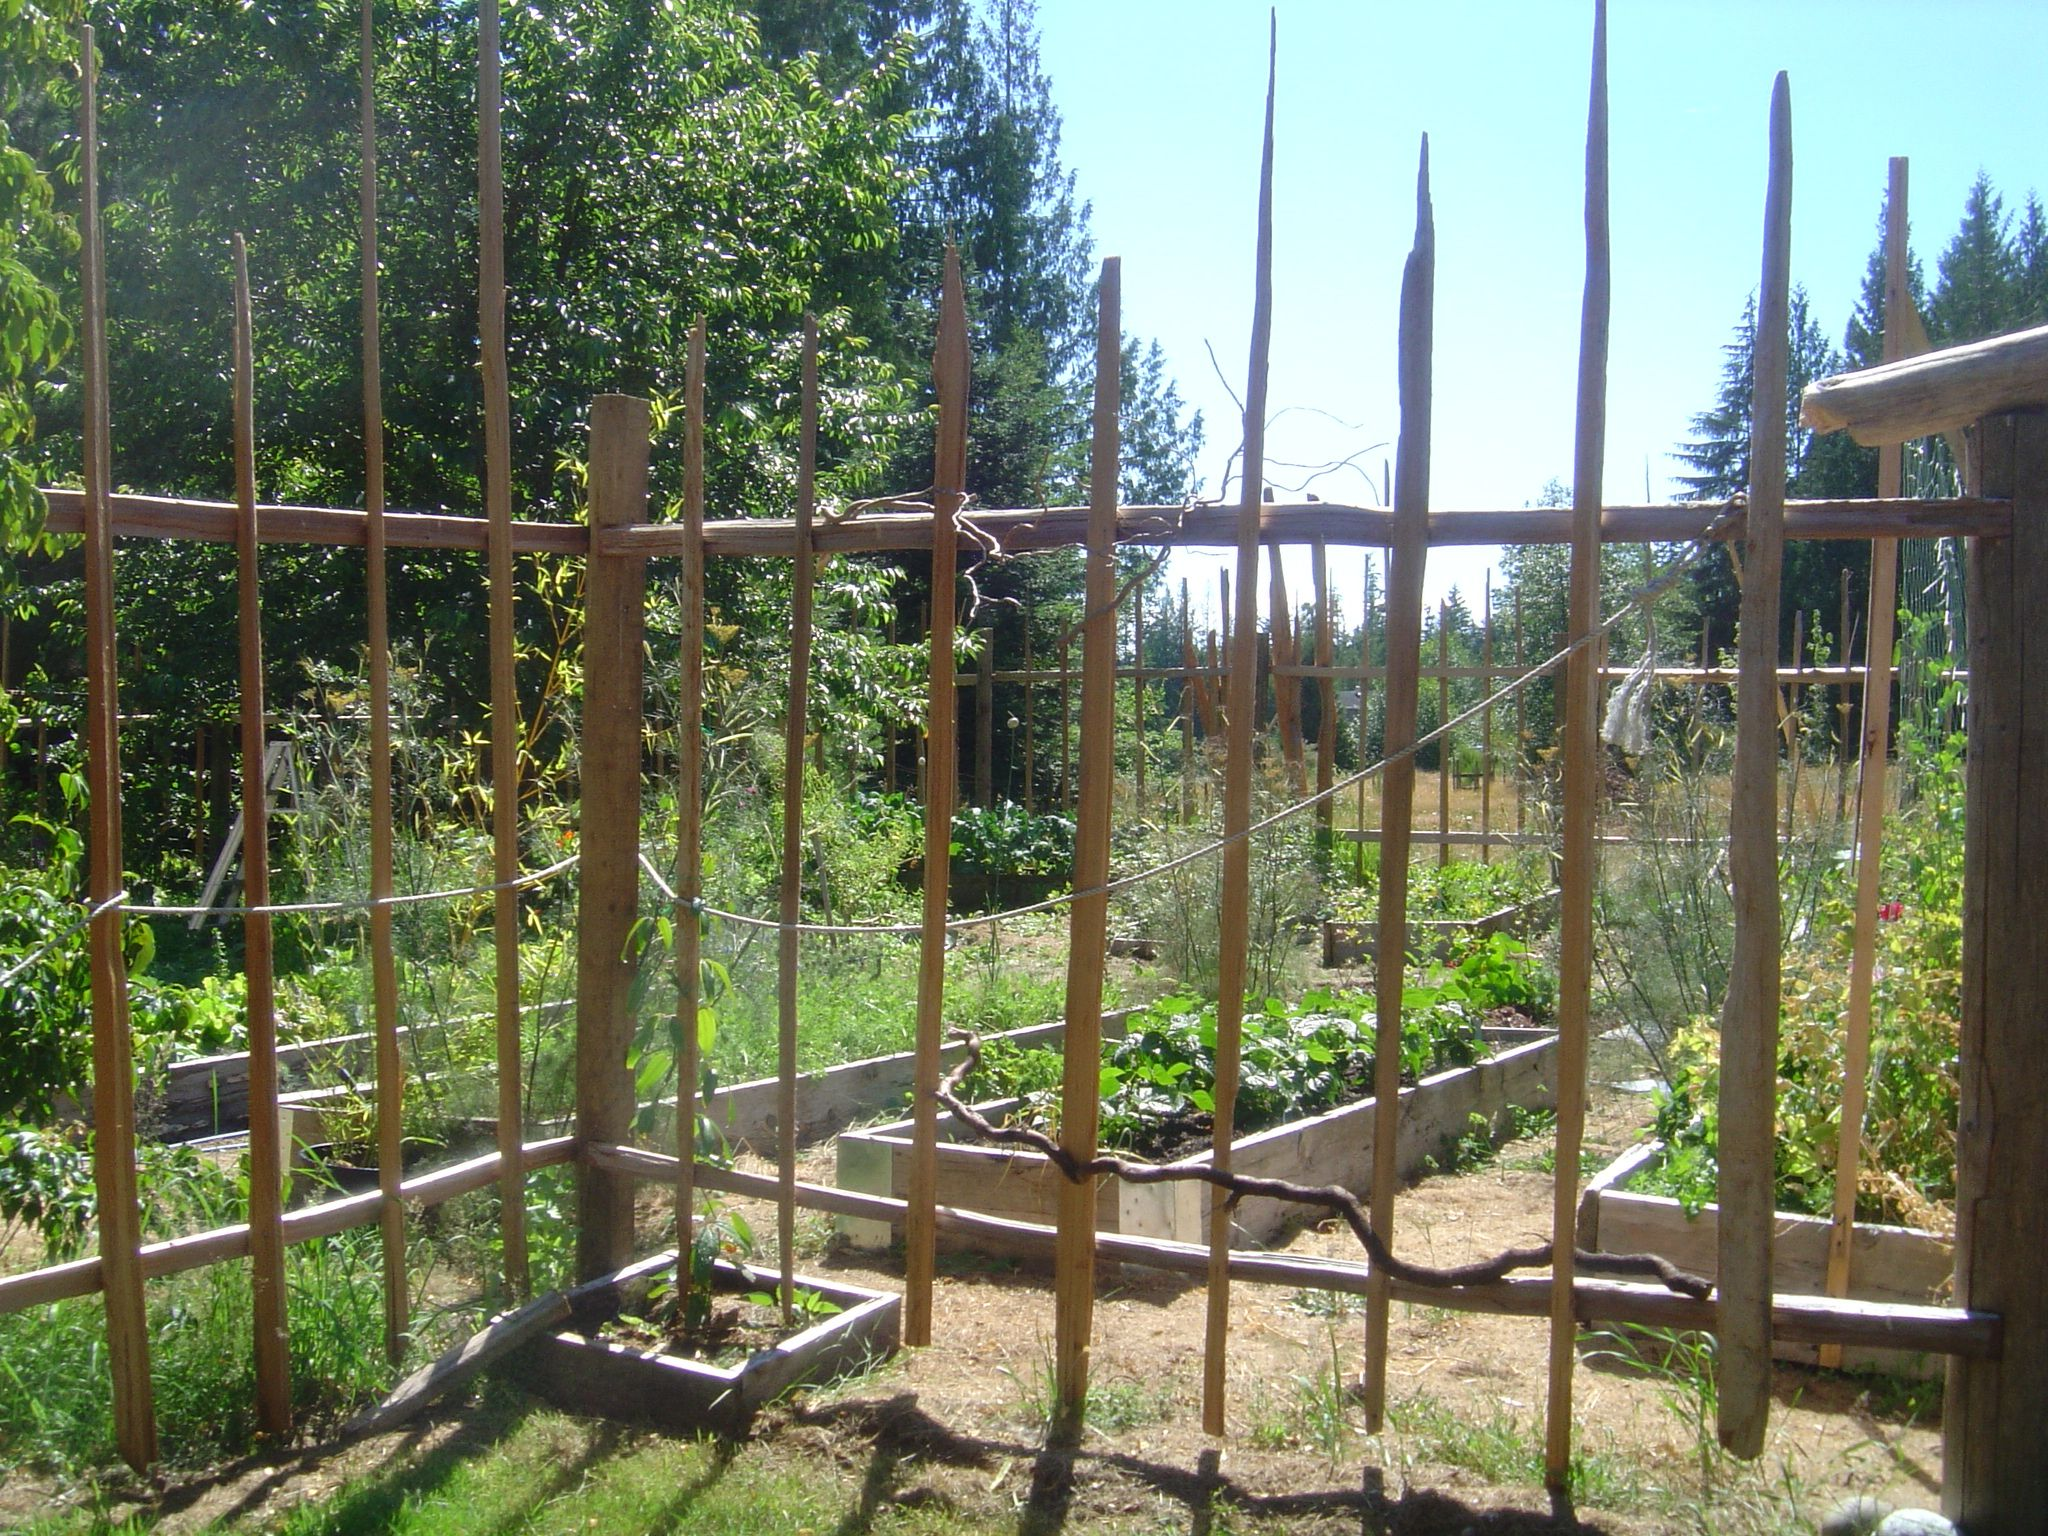 diy garden deer fence and how to build a deer proof funky garden enclosure